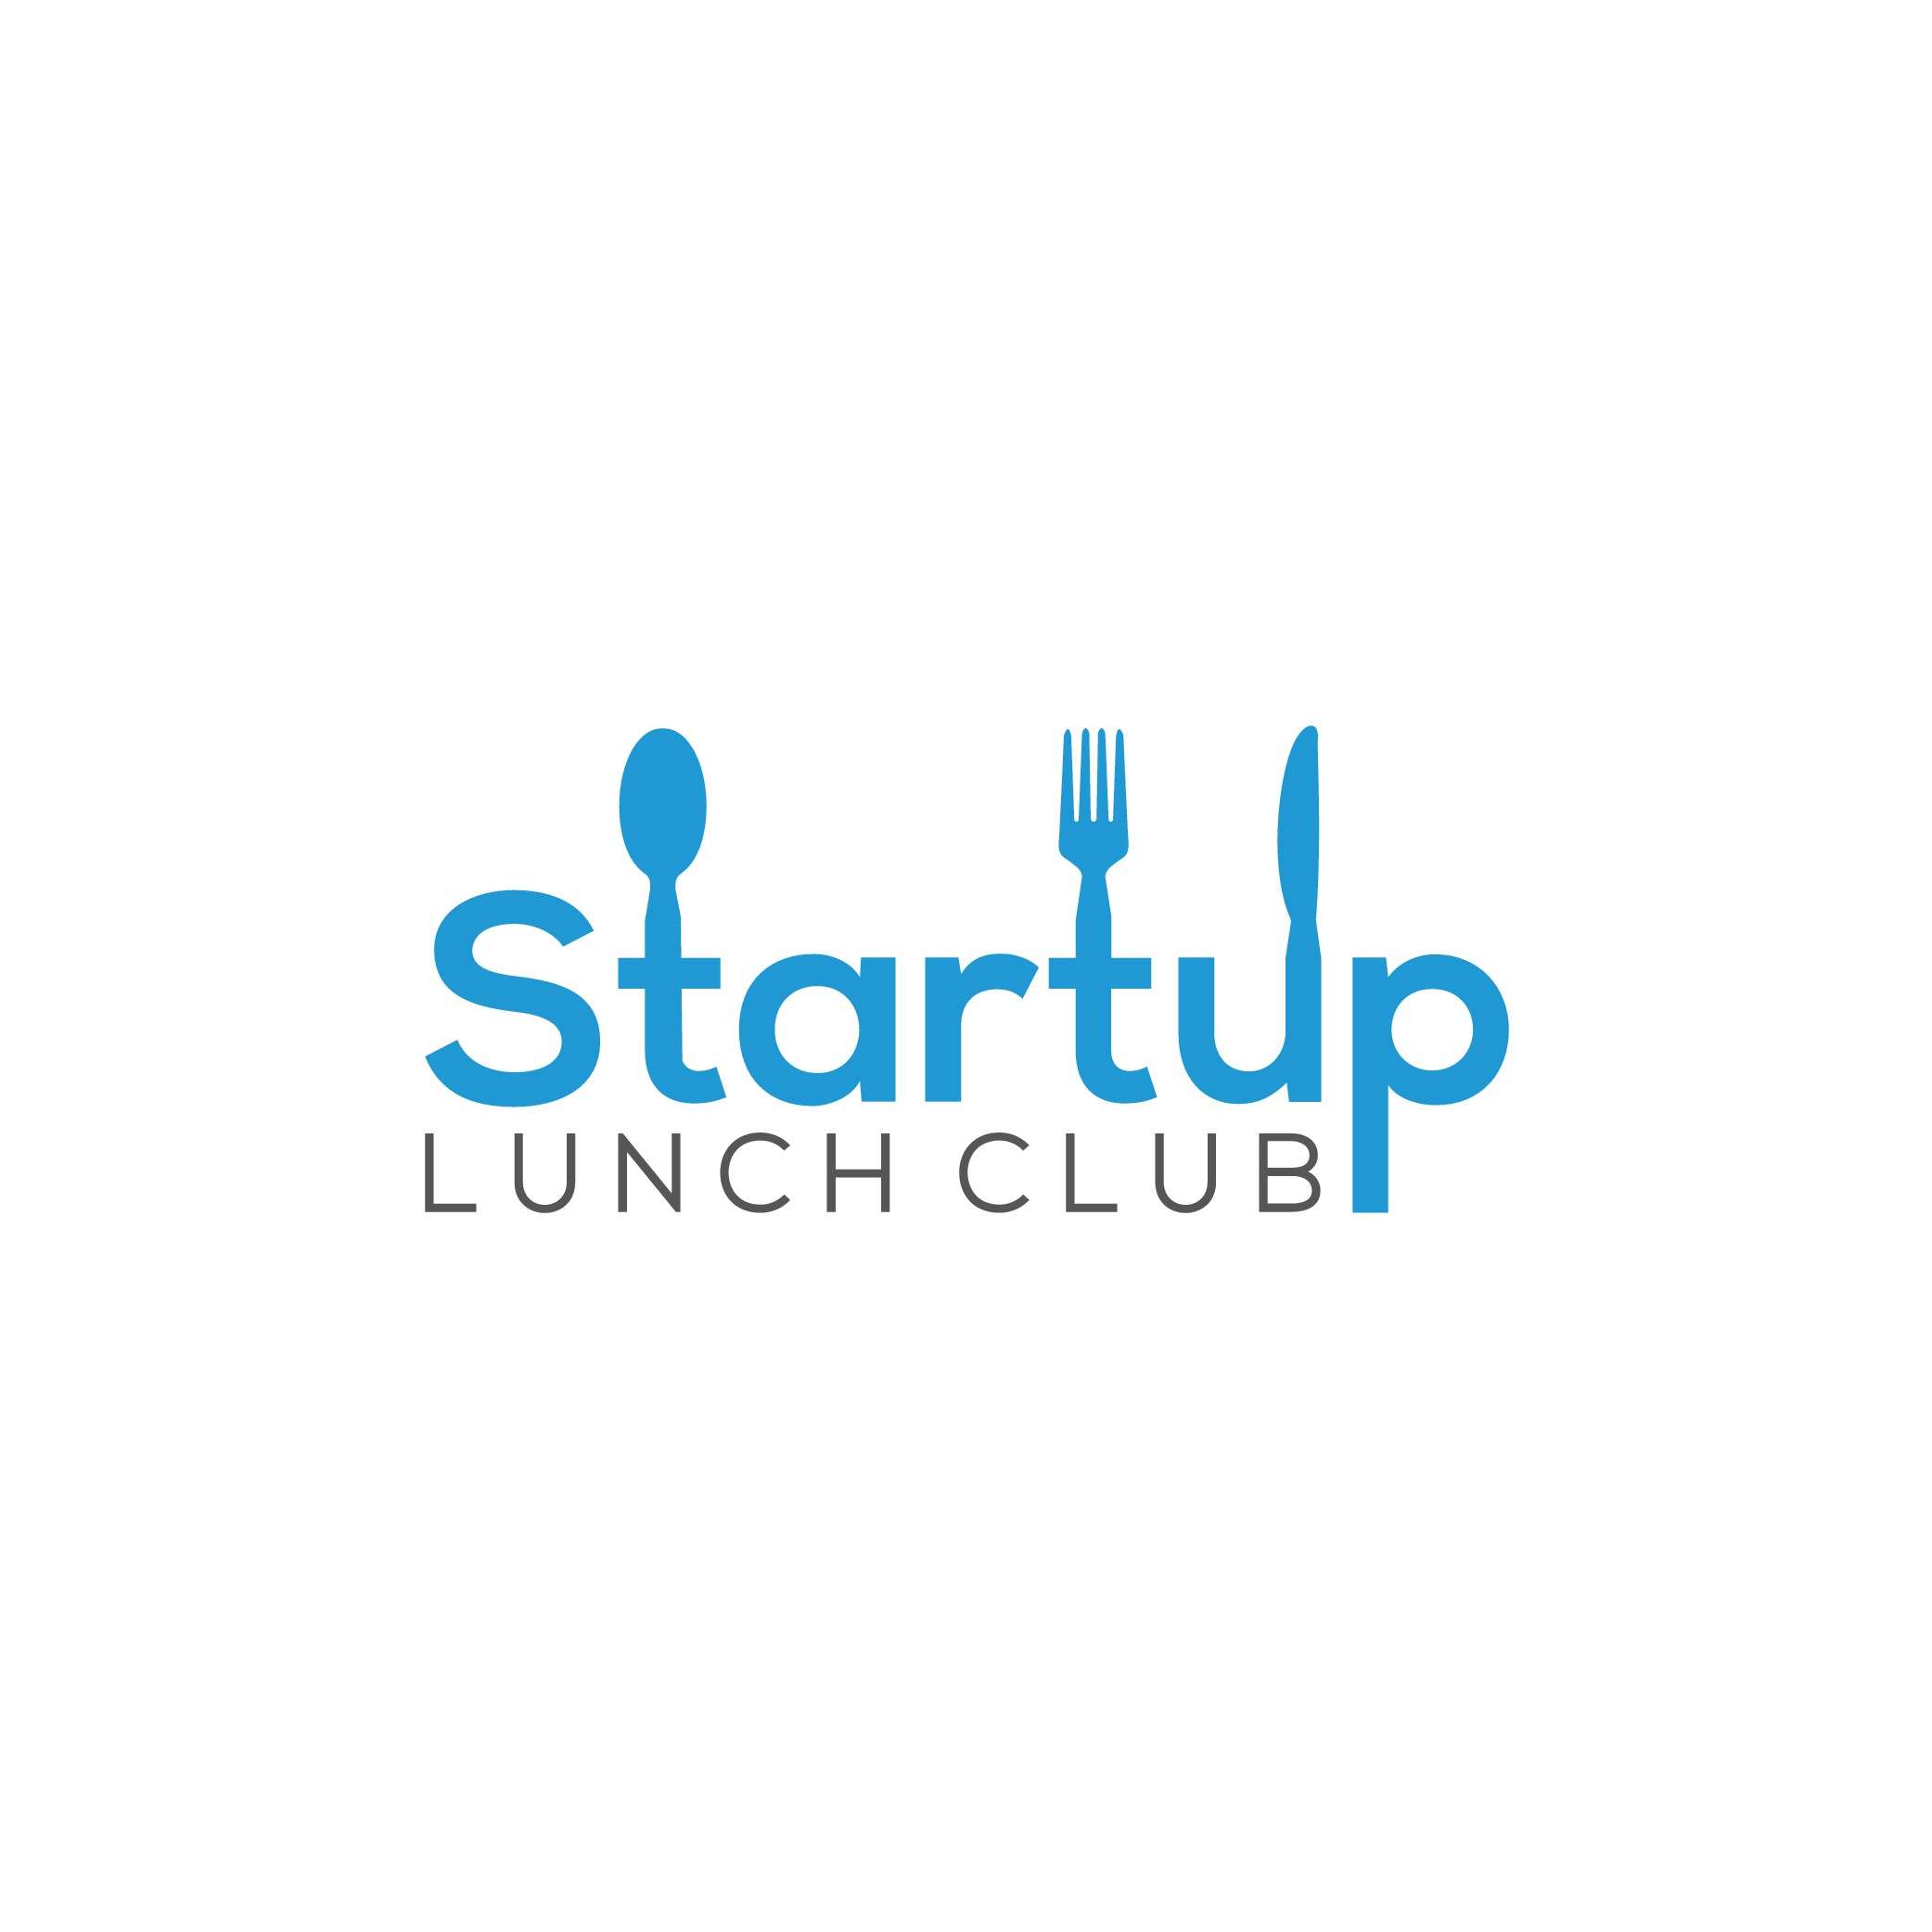 Design a logo for the inaugural Startup Lunch Club